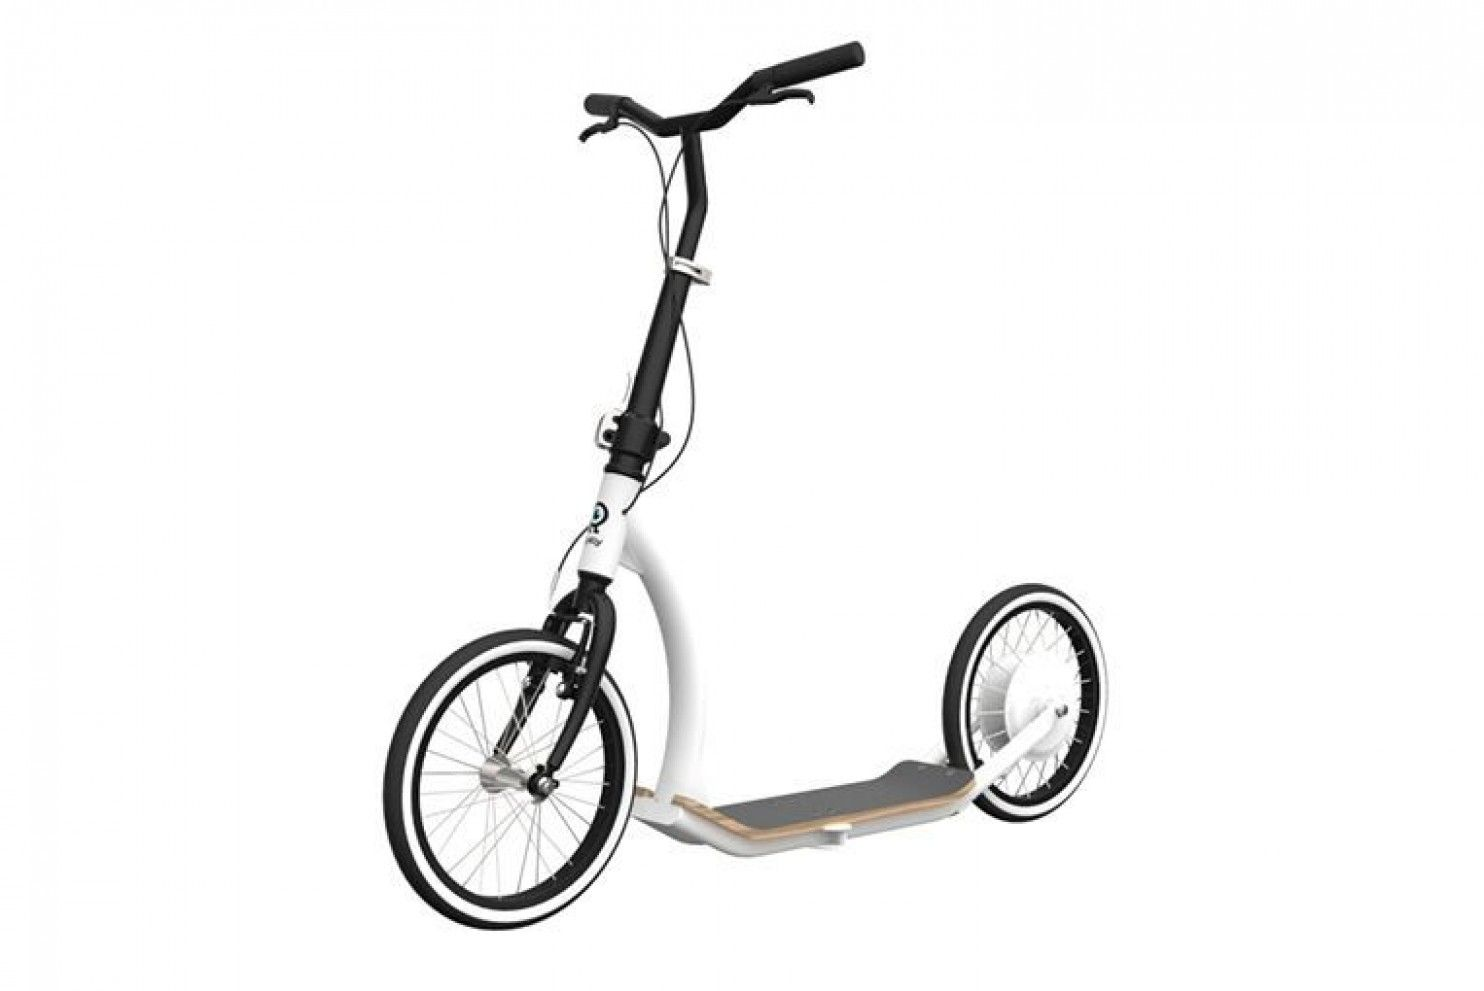 This Electric Scooter For Urban Commuters Coasts On Its